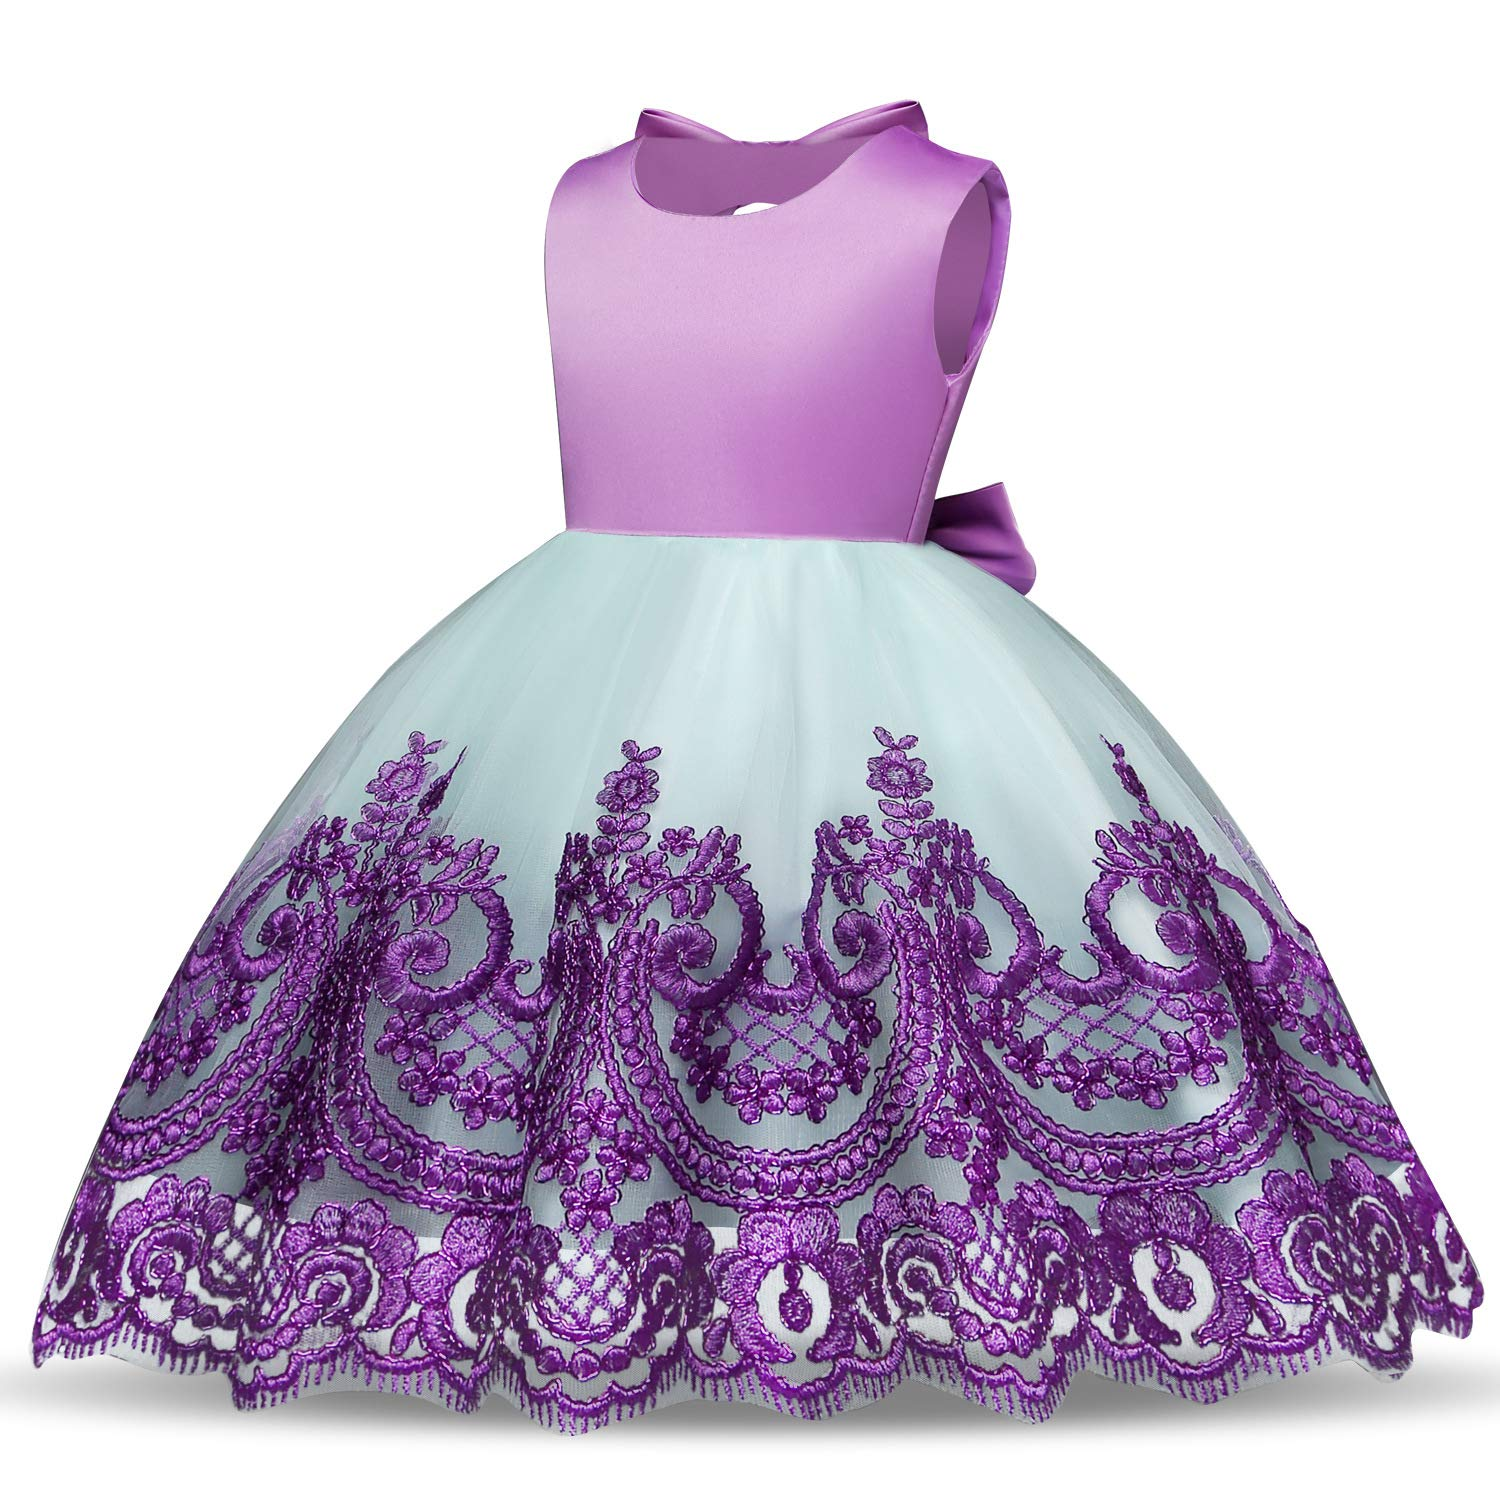 c5f64a87f Flower Girls Dress Baby/Toddle/Little Kids Child Pageant Party Tea Prom  Performance Tutu Dress 5T (Purple,120)